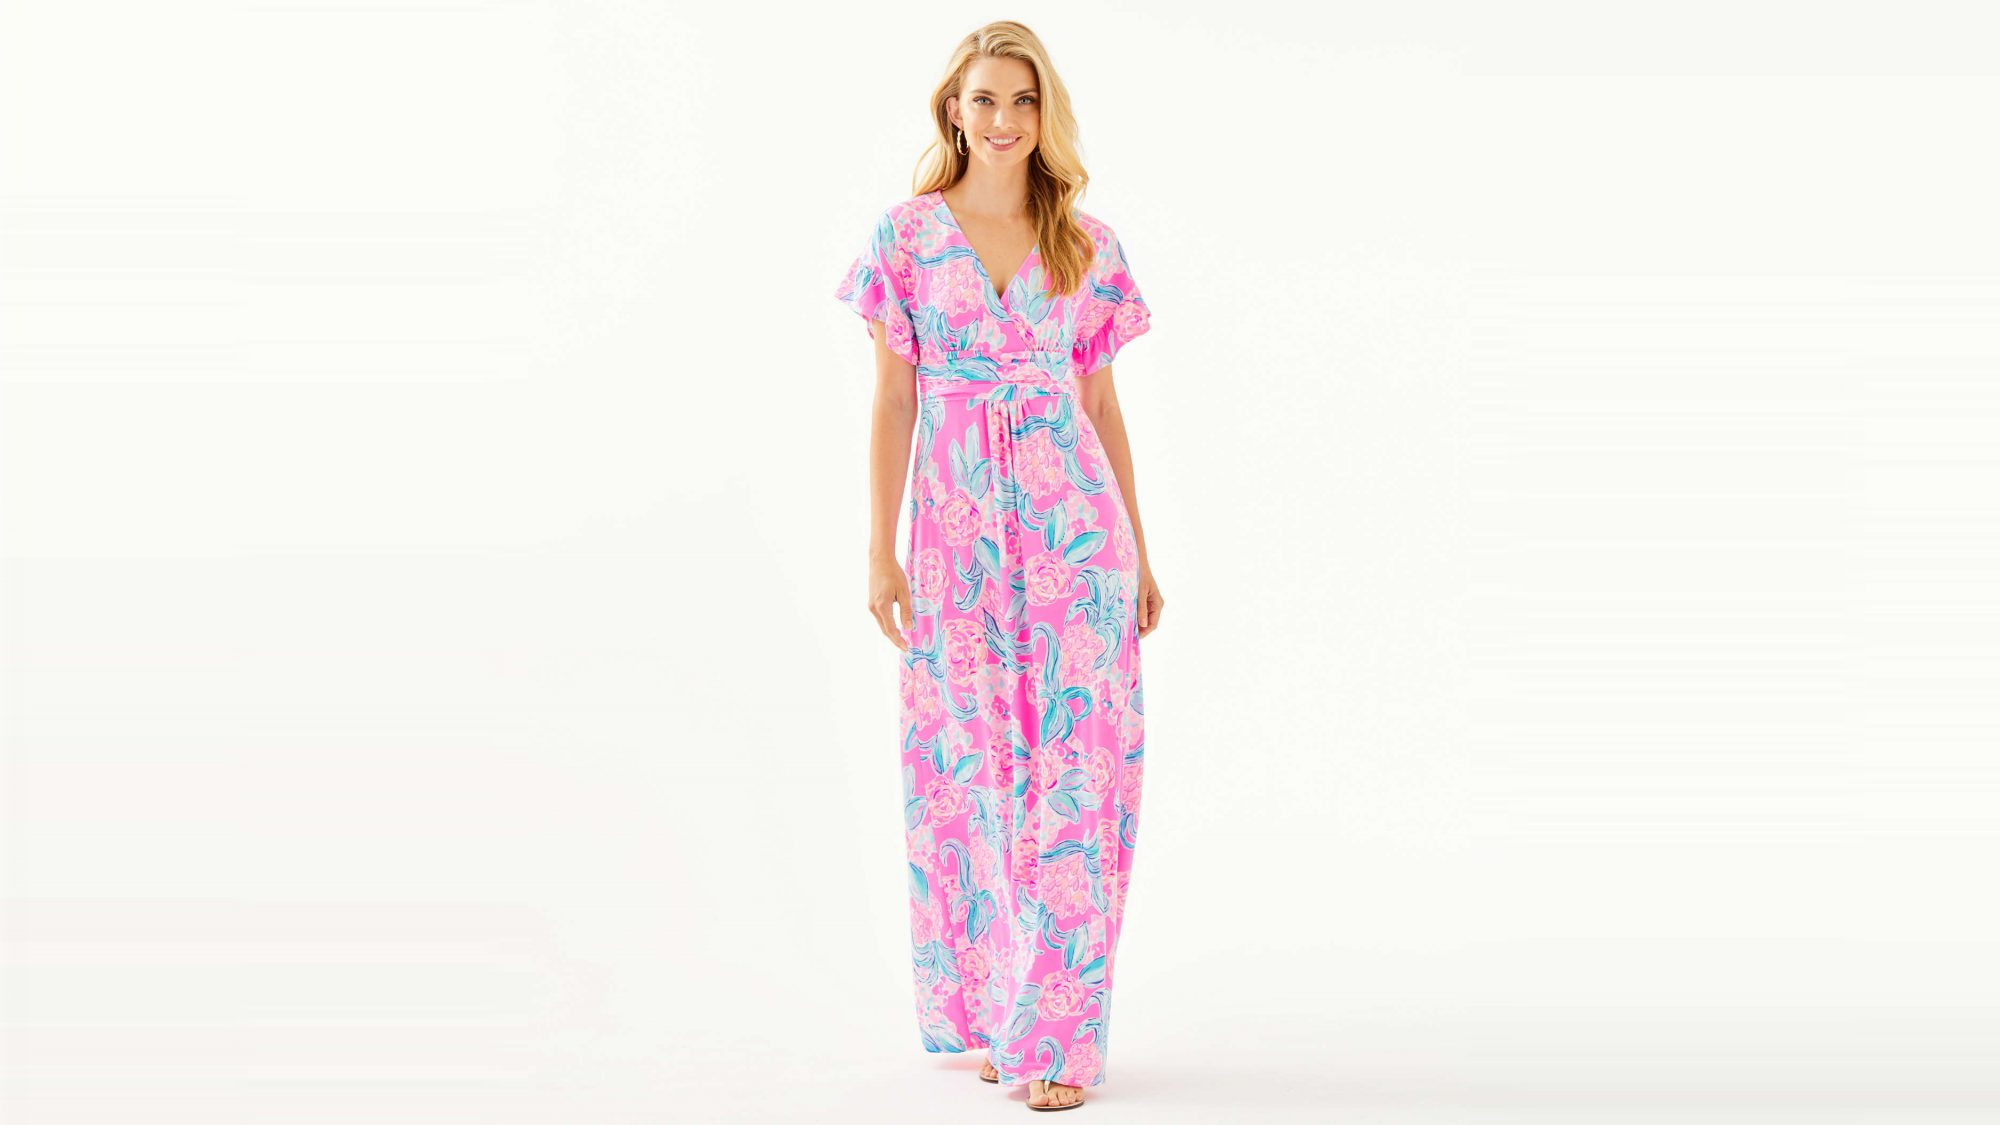 Lilly Pulitzer S Pinking Positive Collection Supports